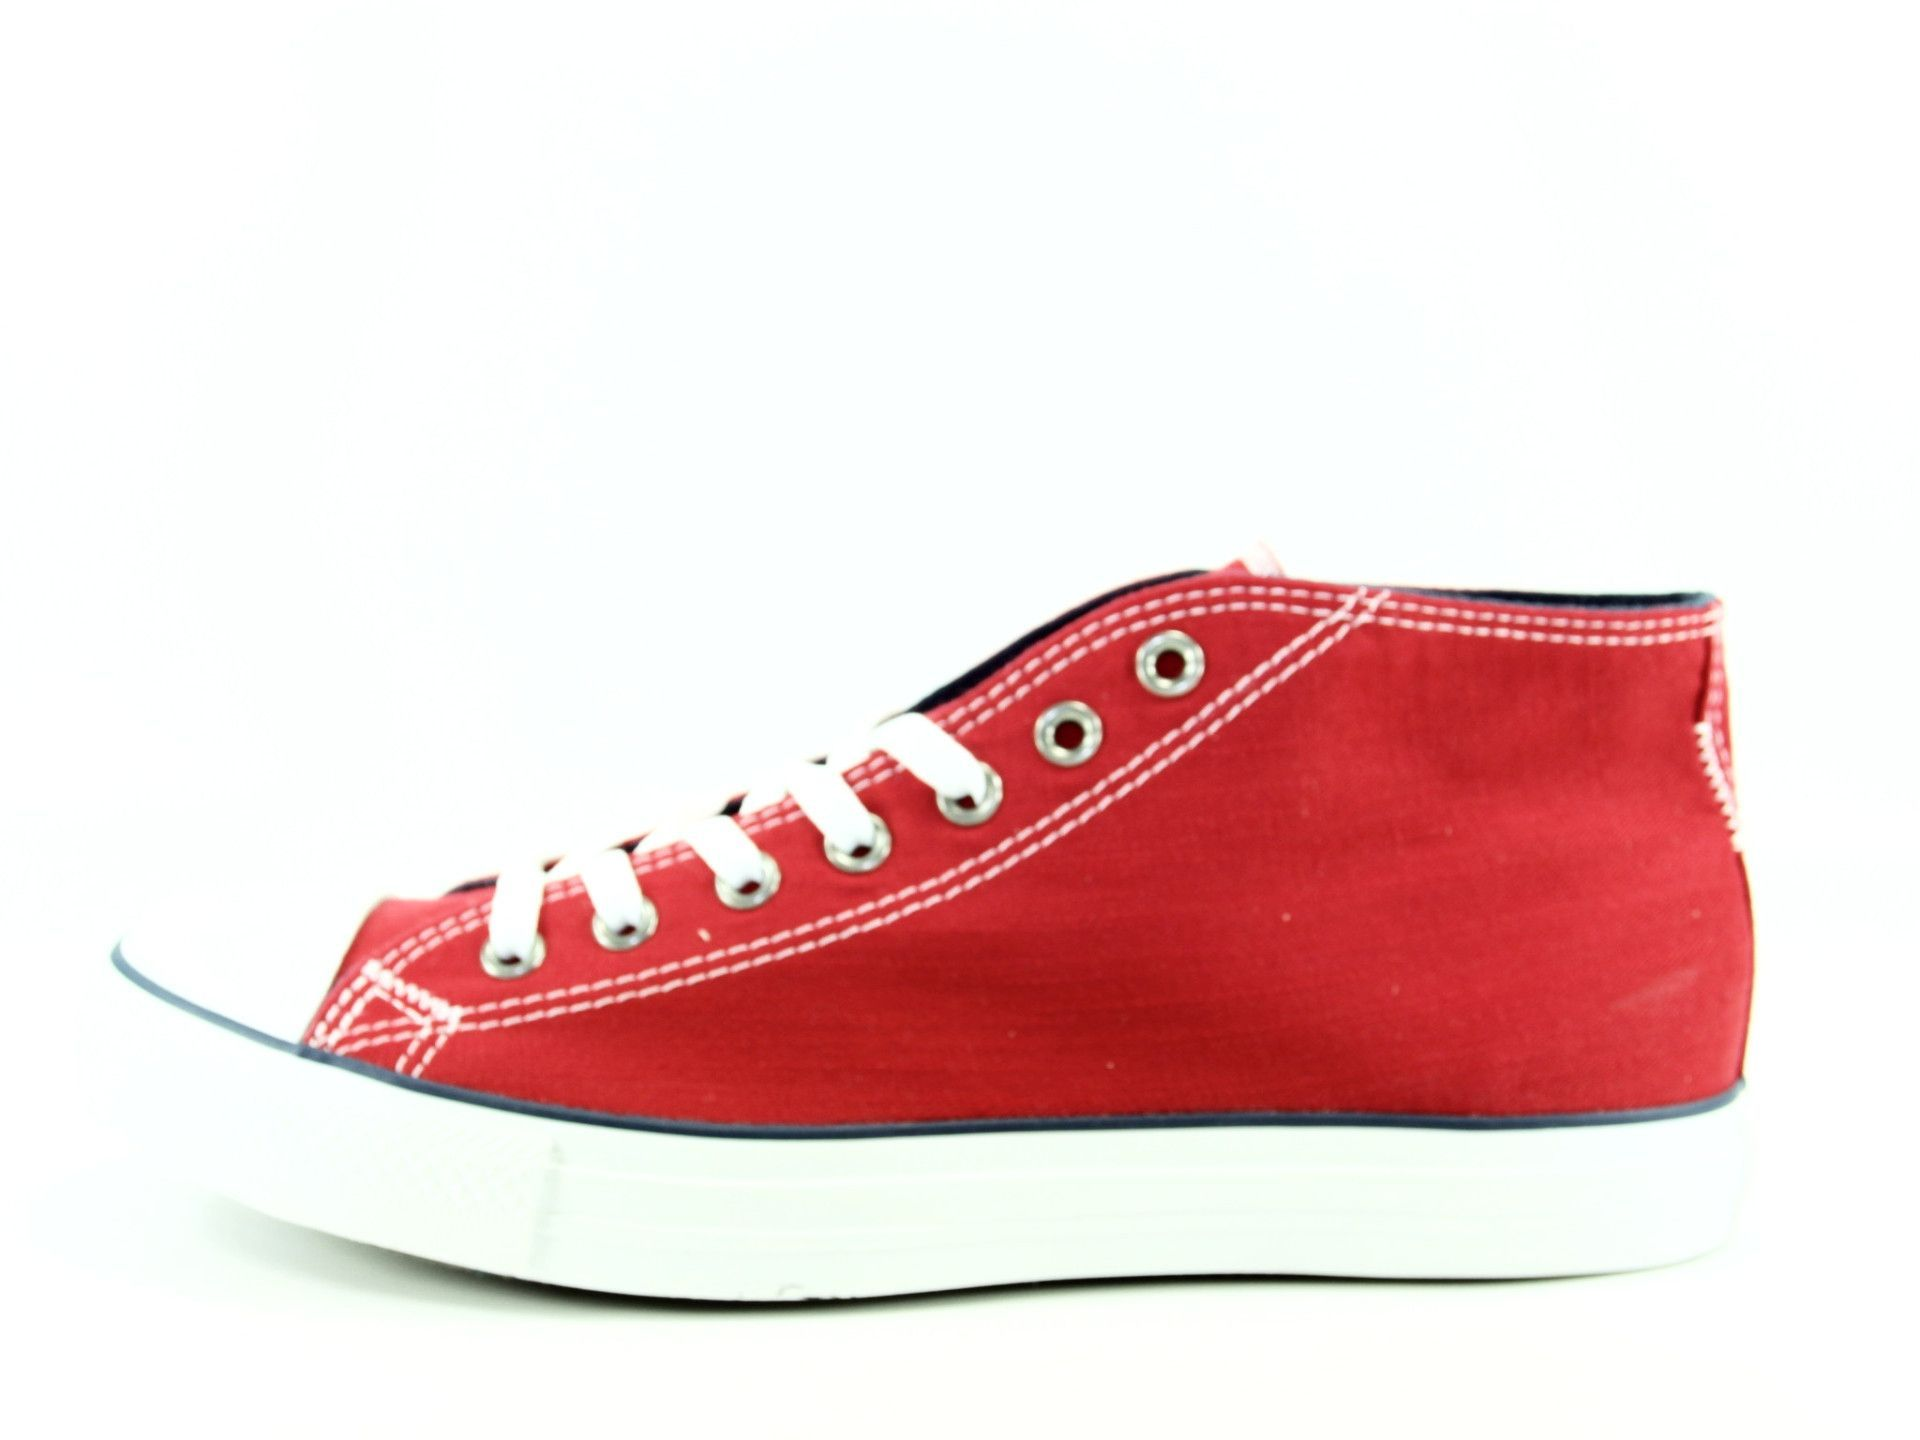 44b47c63cac Converse Chuck Taylor Classic Clean Mid Sneakers Size 11